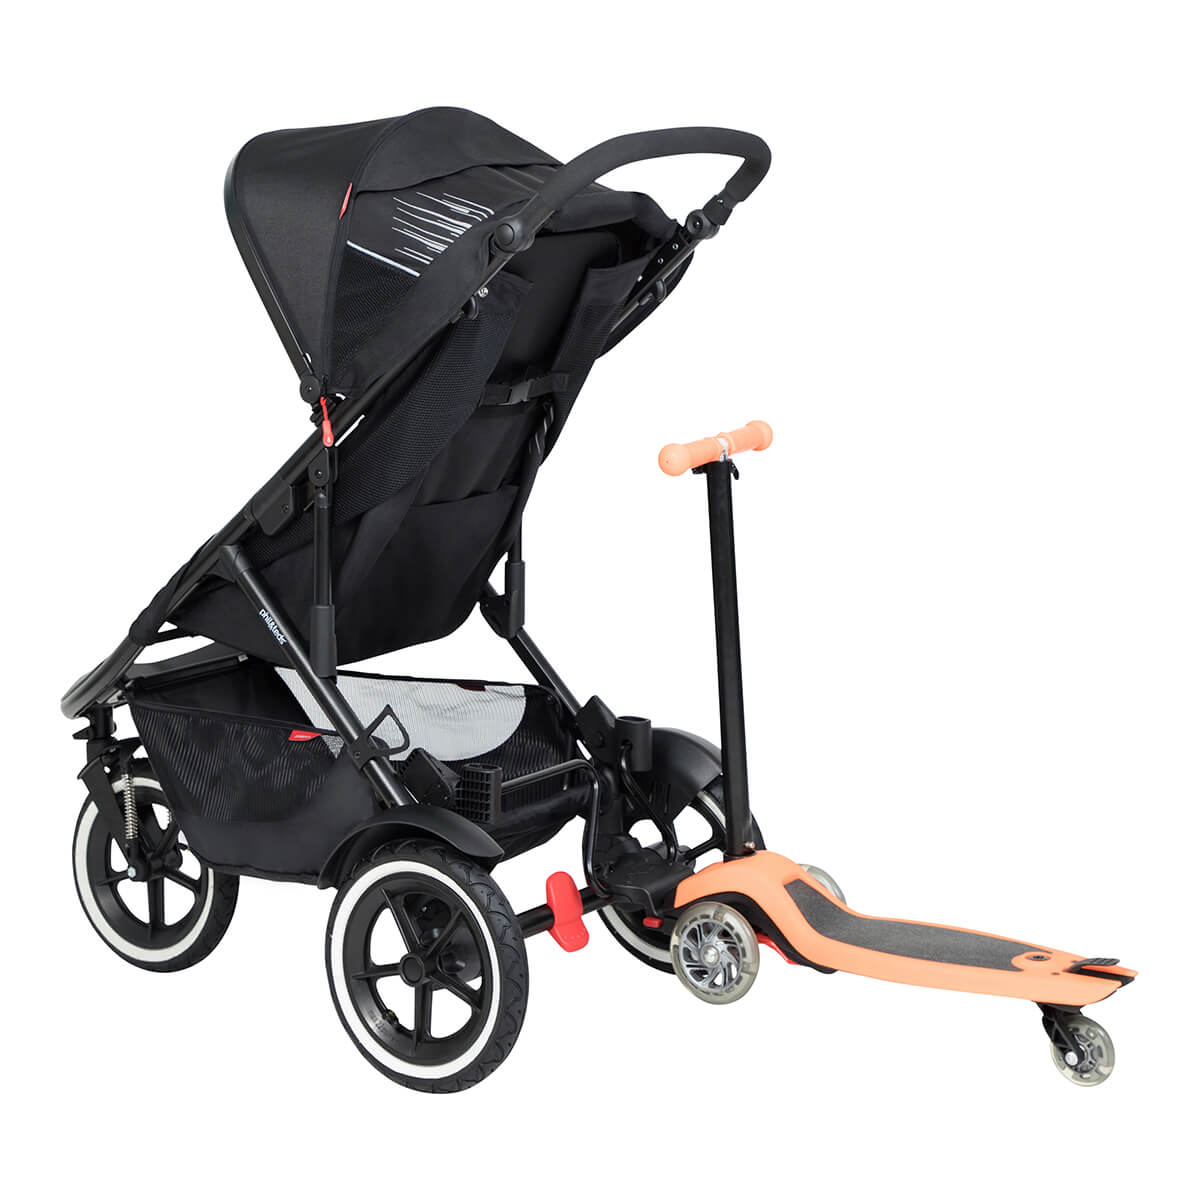 https://cdn.accentuate.io/4513463205984/19440099852472/philteds-sport-buggy-with-freerider-stroller-board-in-rear-v1626486611466.jpg?1200x1200